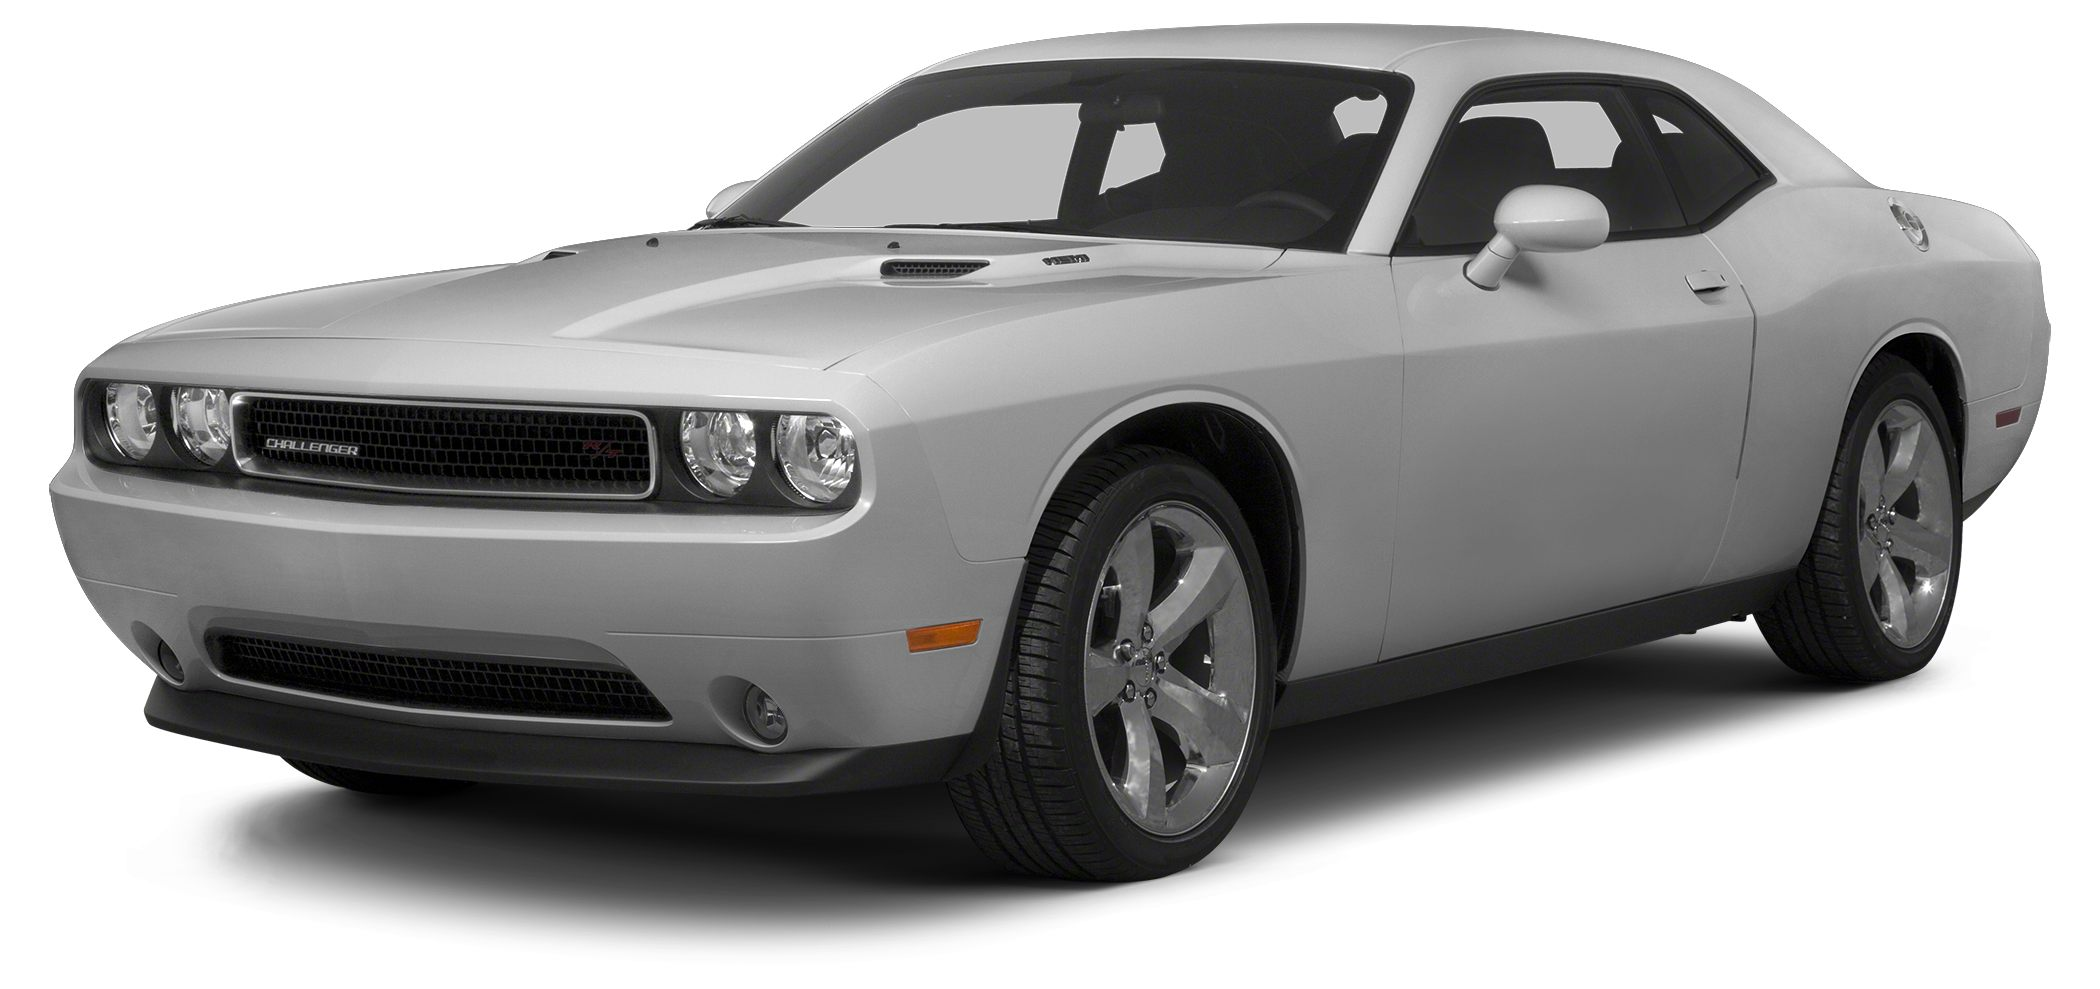 2012 Dodge Challenger RT Dont wait - wont last Please call us now and make sure to ask for SAM